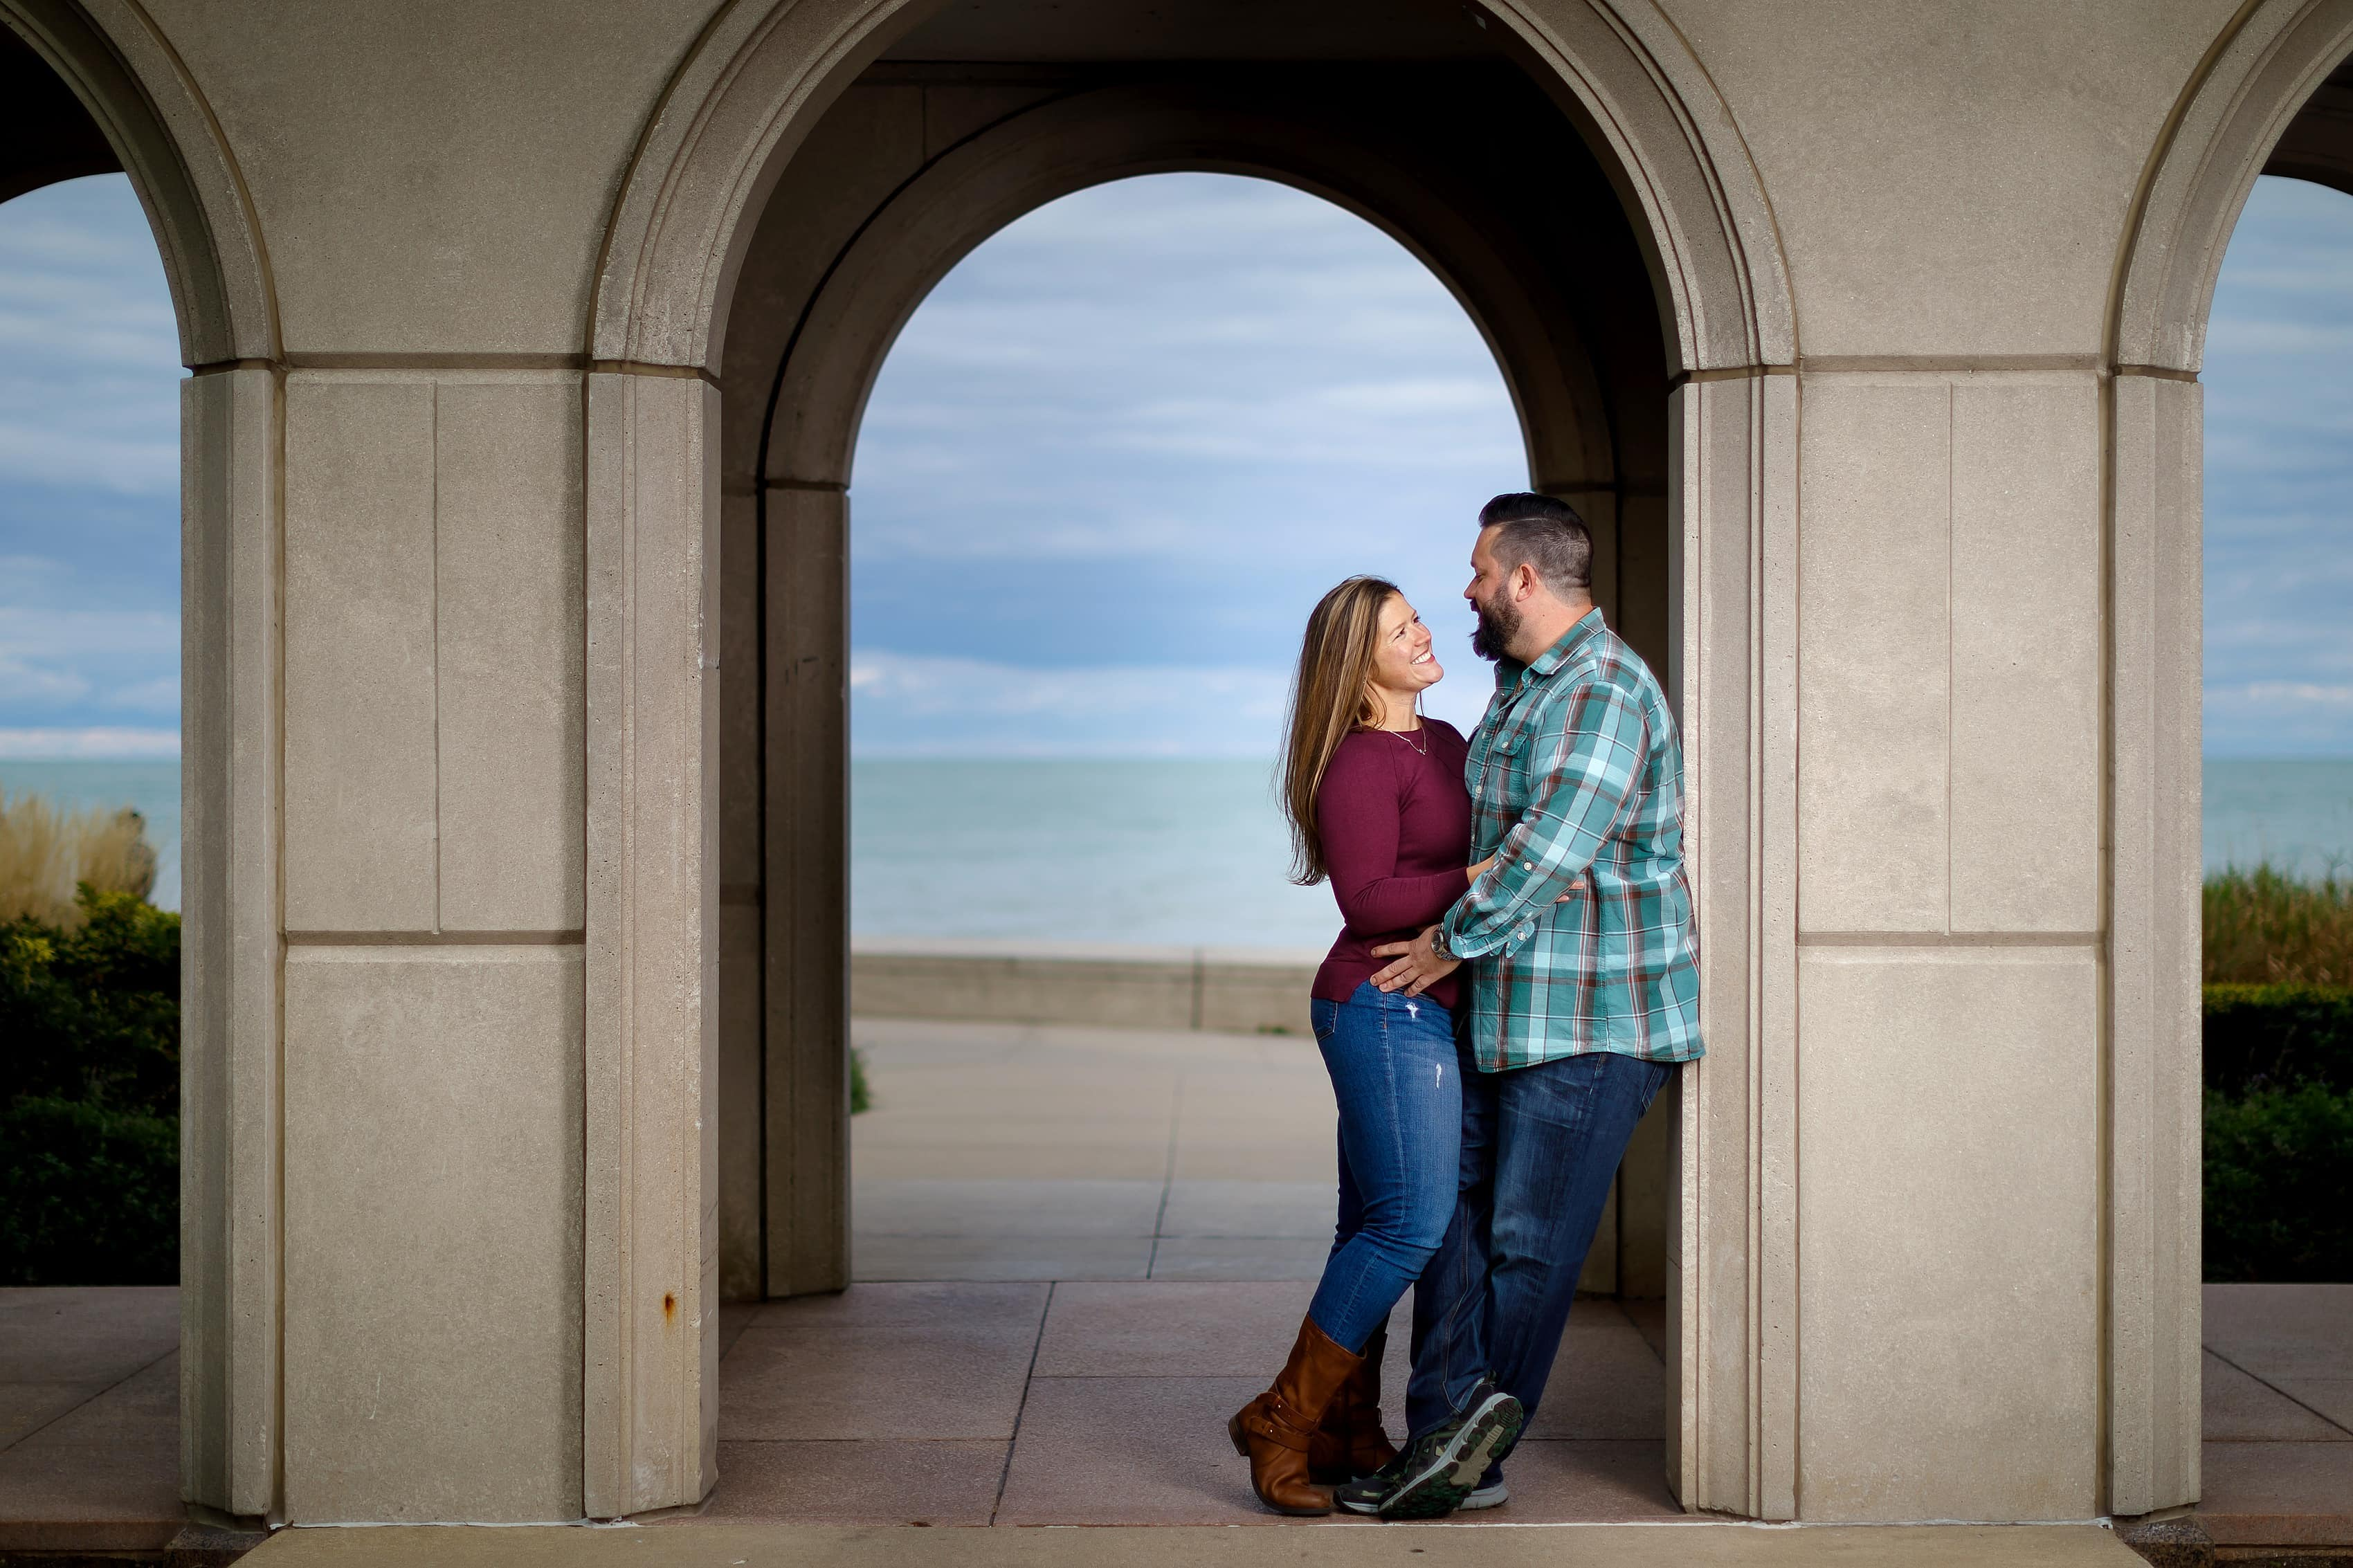 couple poses for engagement photo under arched walkway with Lake Michigan in the background on the campus of Loyola University Chicago